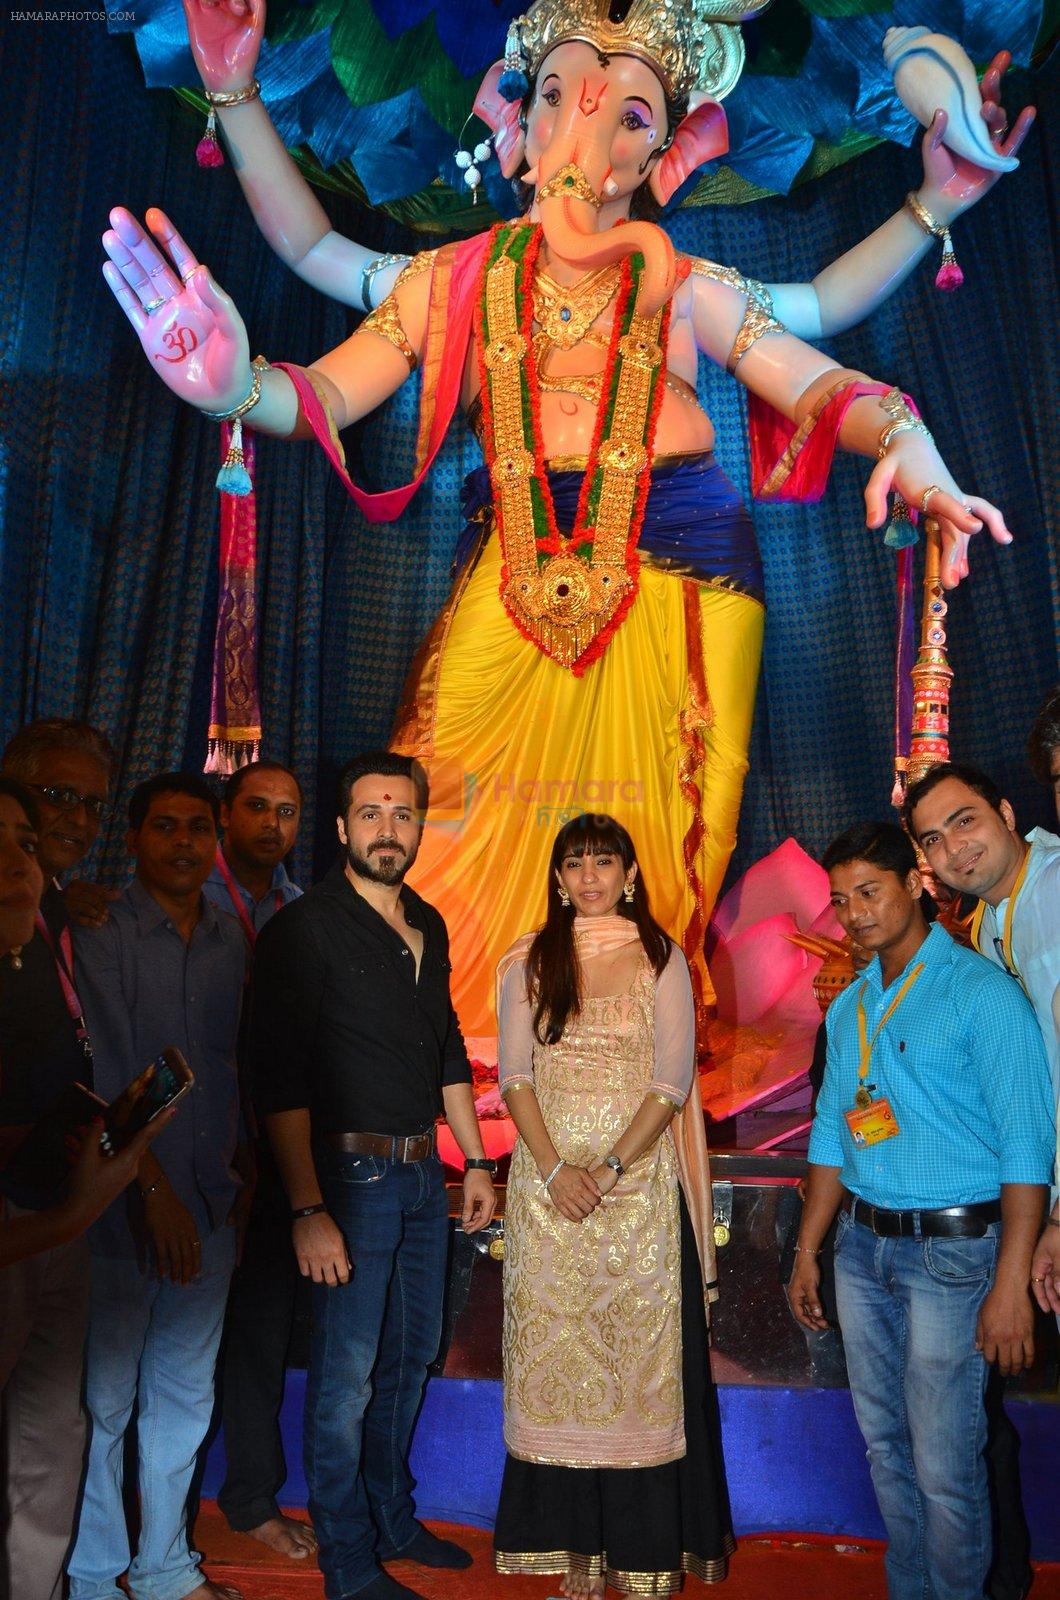 Emraan Hashmi visited Mumbai Cha Raja Ganesh Galli on 11th Sept 2016